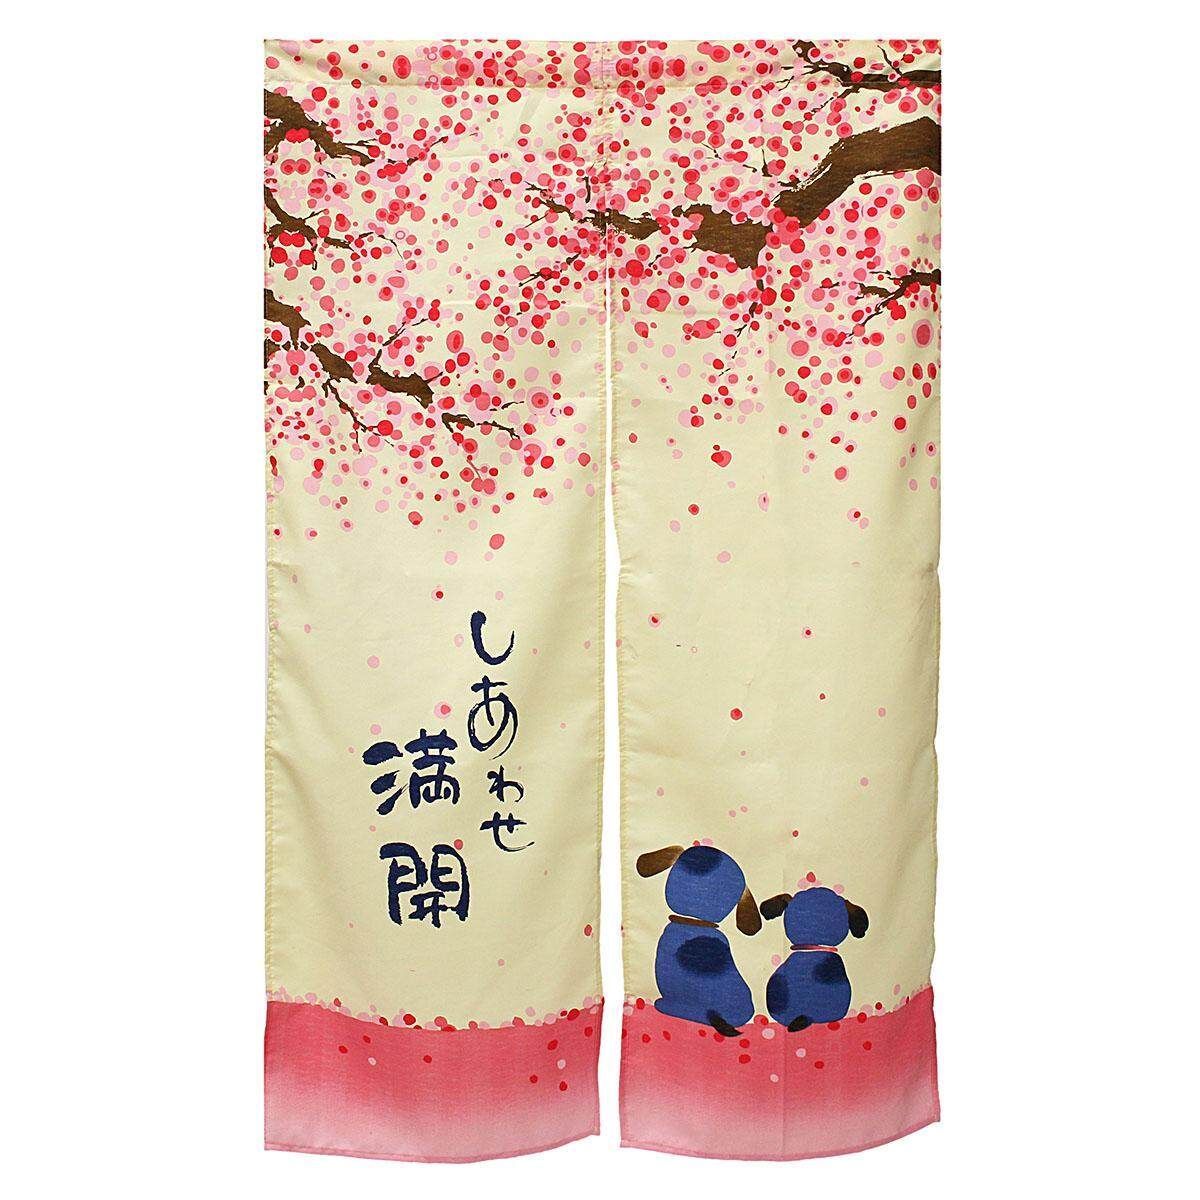 Romantic Blossom Cherry Sakura And Little Dog Japanese Noren Doorway Curtain By Moonbeam.